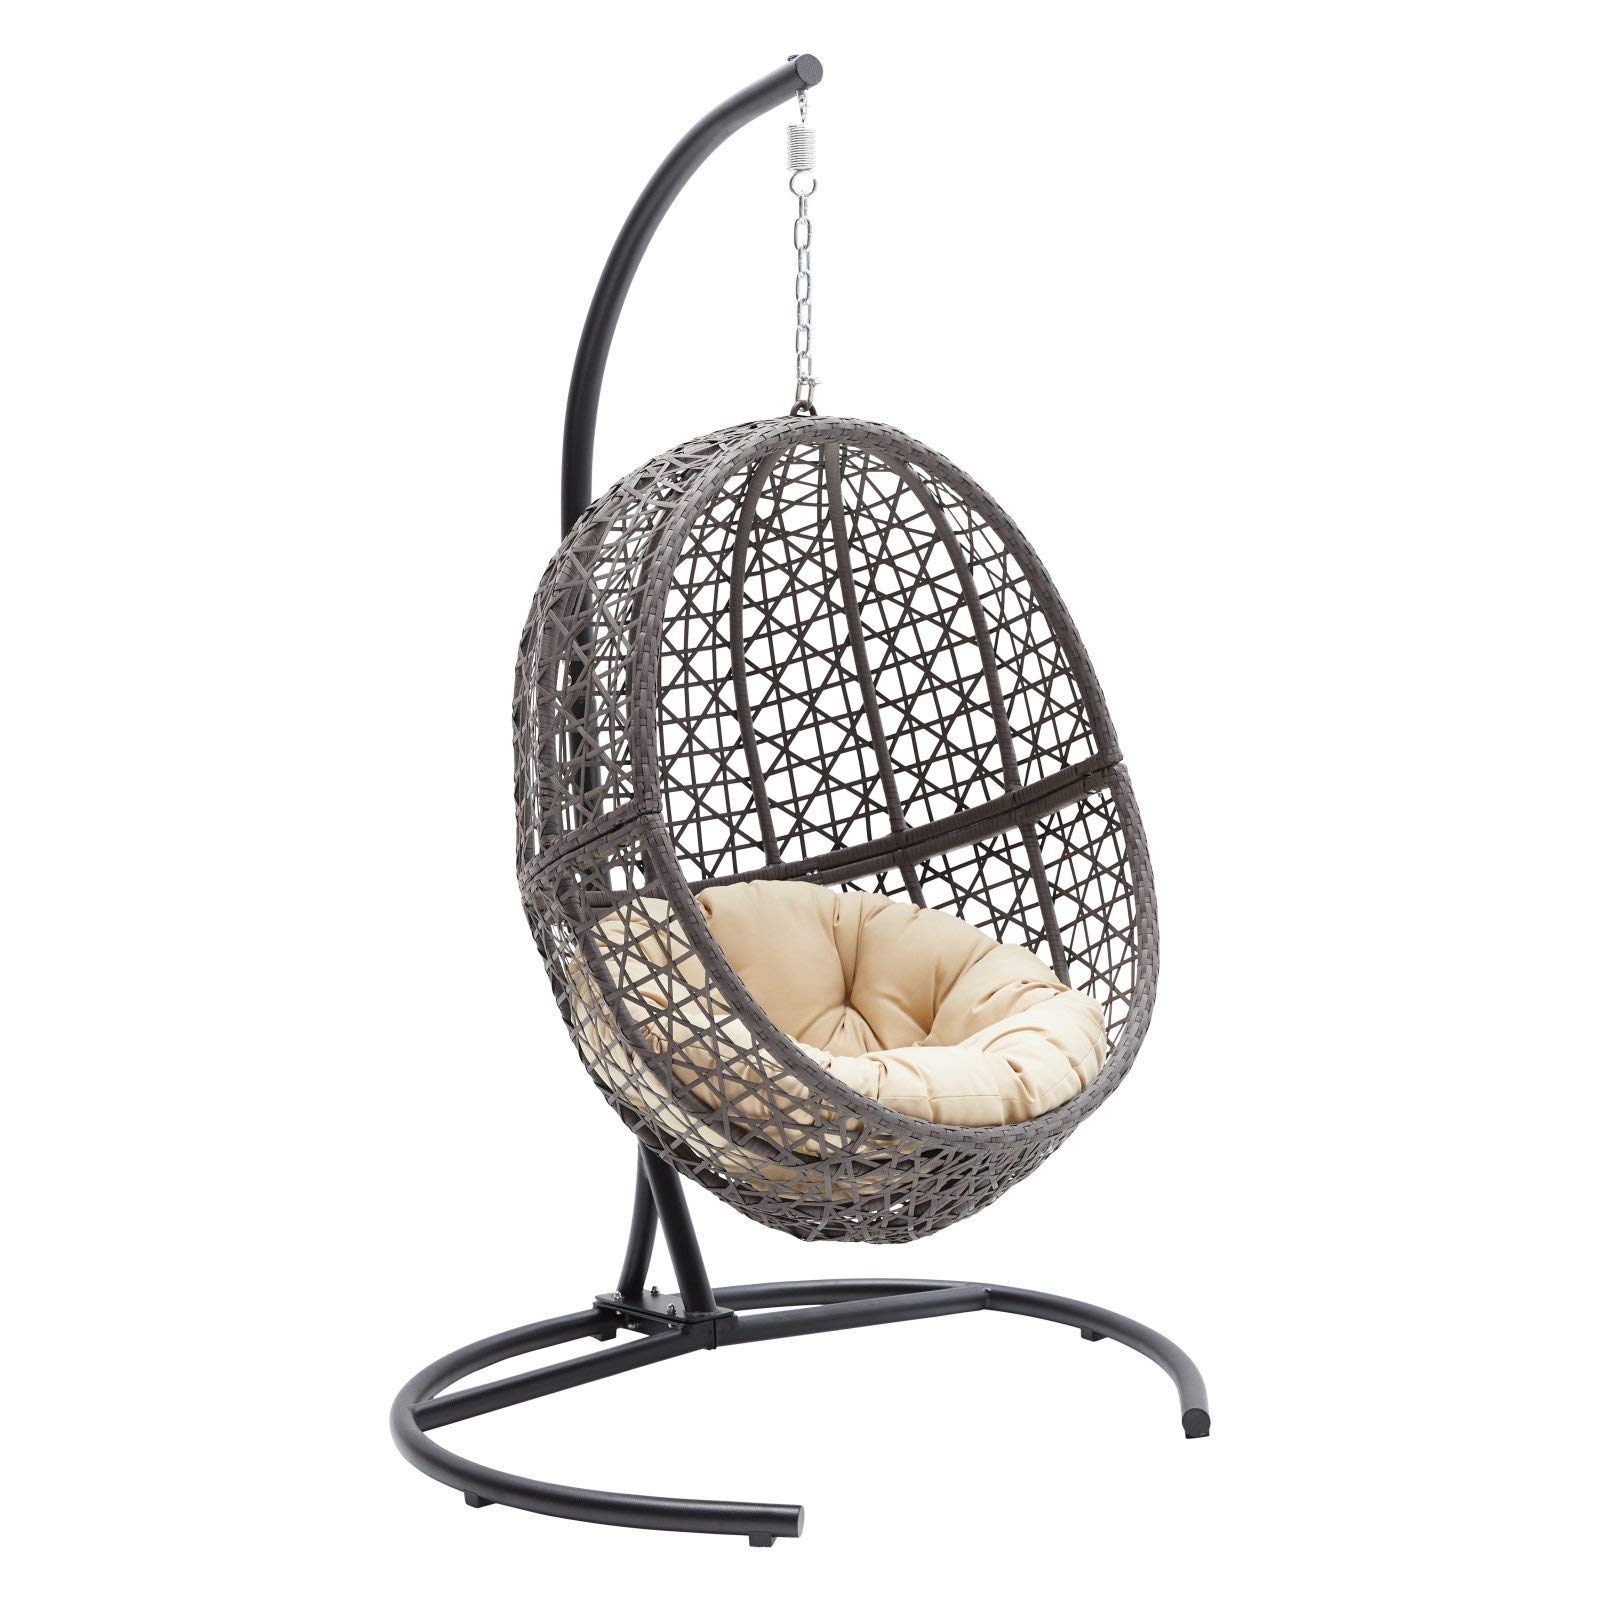 Resin Wicker Hanging Egg Chair Outdoor Patio Furniture with Cushion and Stand, Steel Frame, Espresso by Island Bay